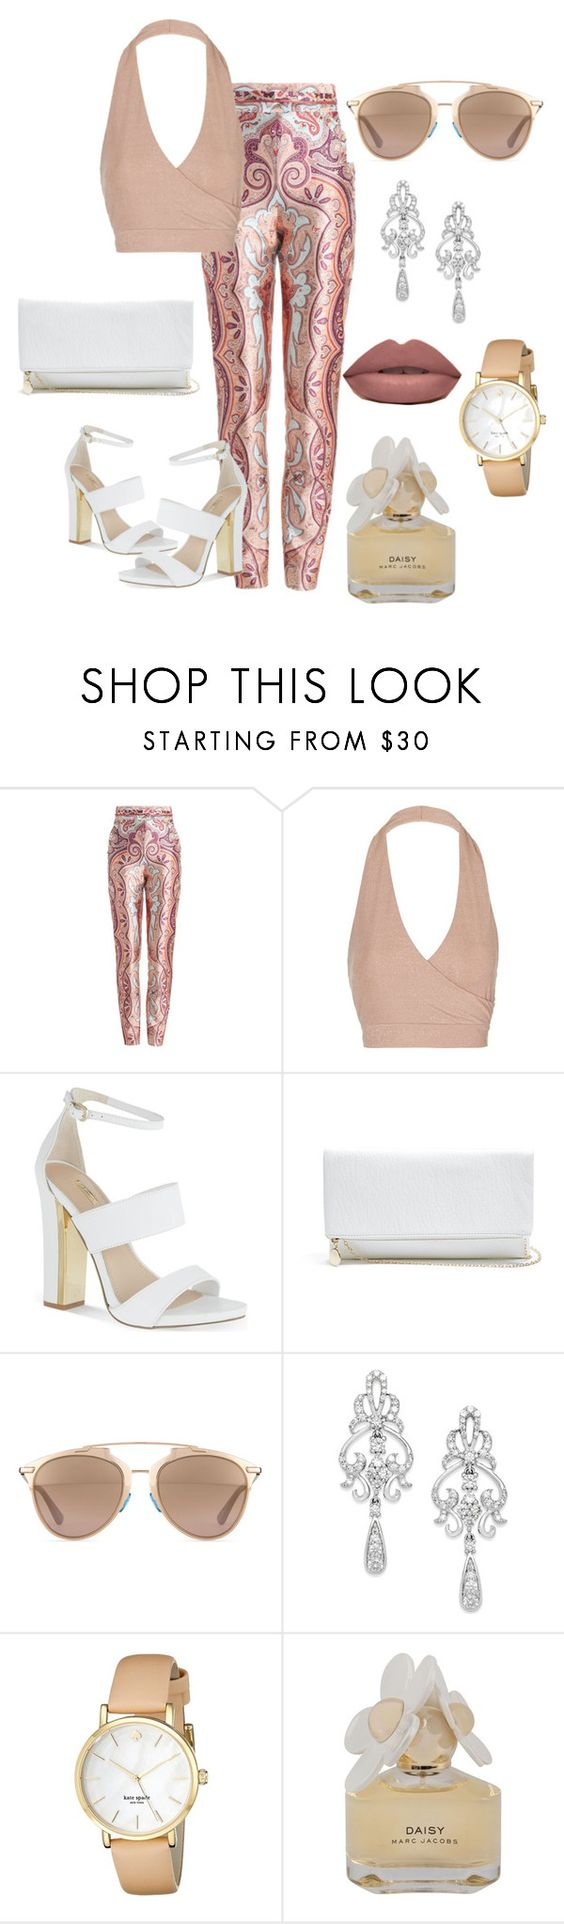 """Untitled #3"" by melaniepp ❤ liked on Polyvore featuring Zimmermann, Topshop, Carvela, GUESS, Christian Dior, Wrapped In Love, Kate Spade and Marc by Marc Jacobs"